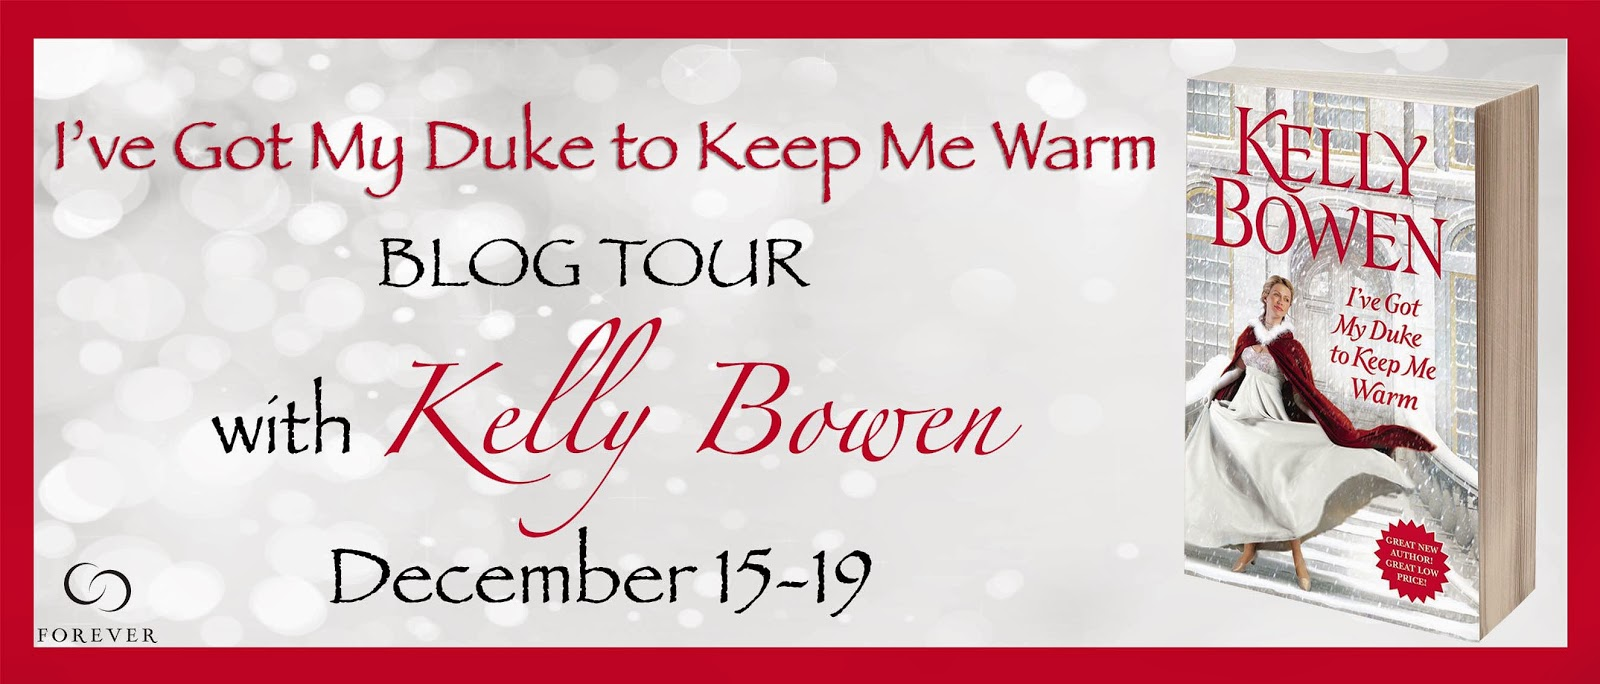 Blog Tour: Top 5 List + Giveaway – I've Got My Duke to Keep Me Warm by Kelly Bowen